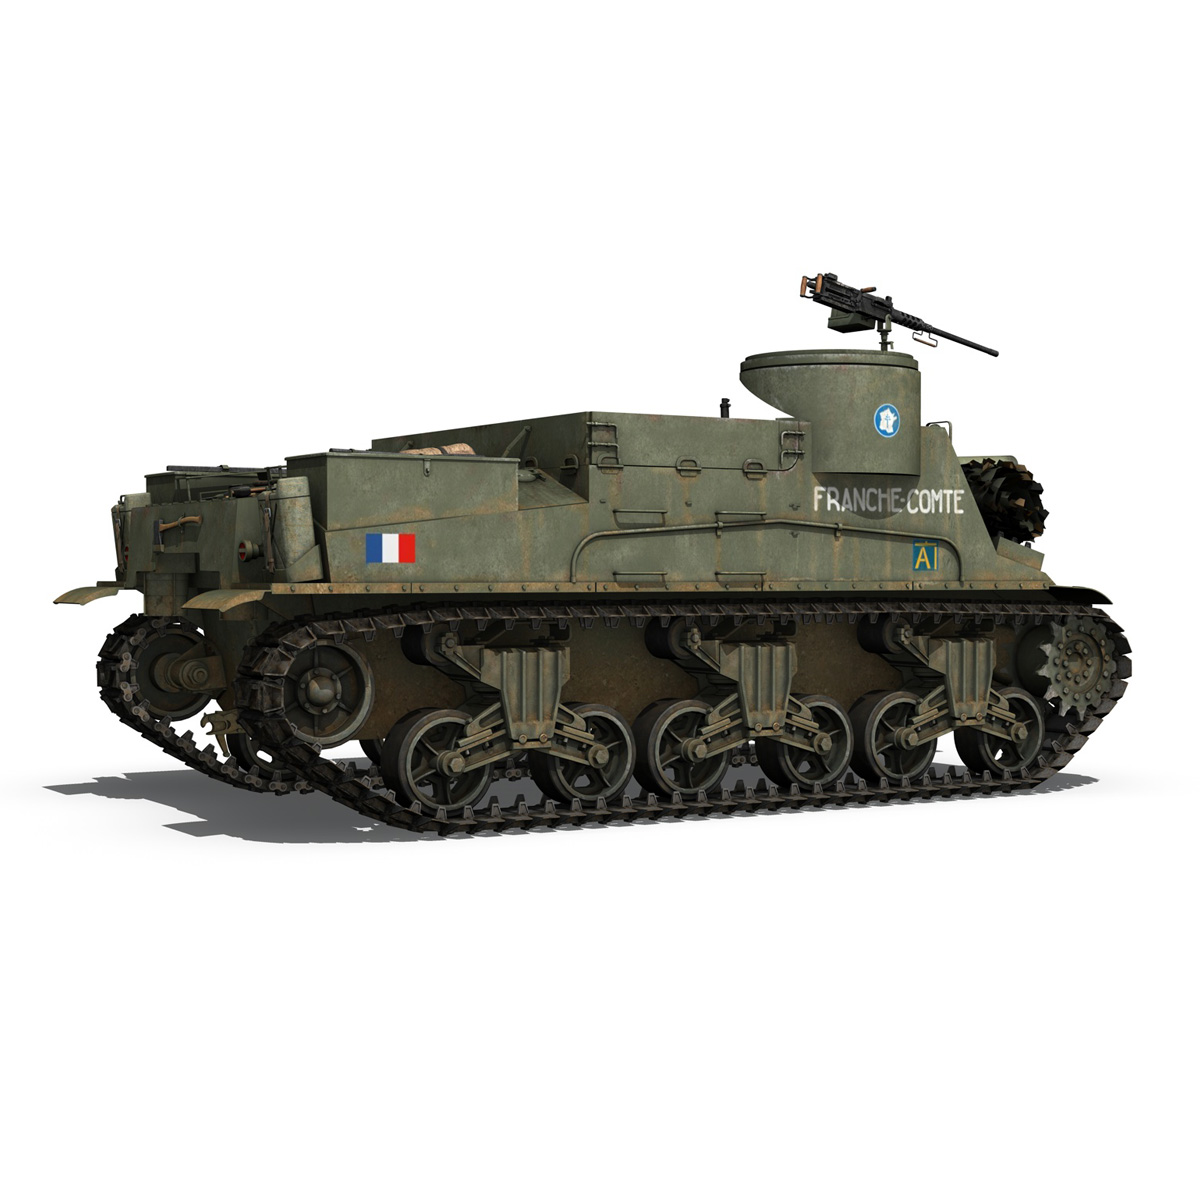 M7 Priest - Franche-Comte 3d model  265862